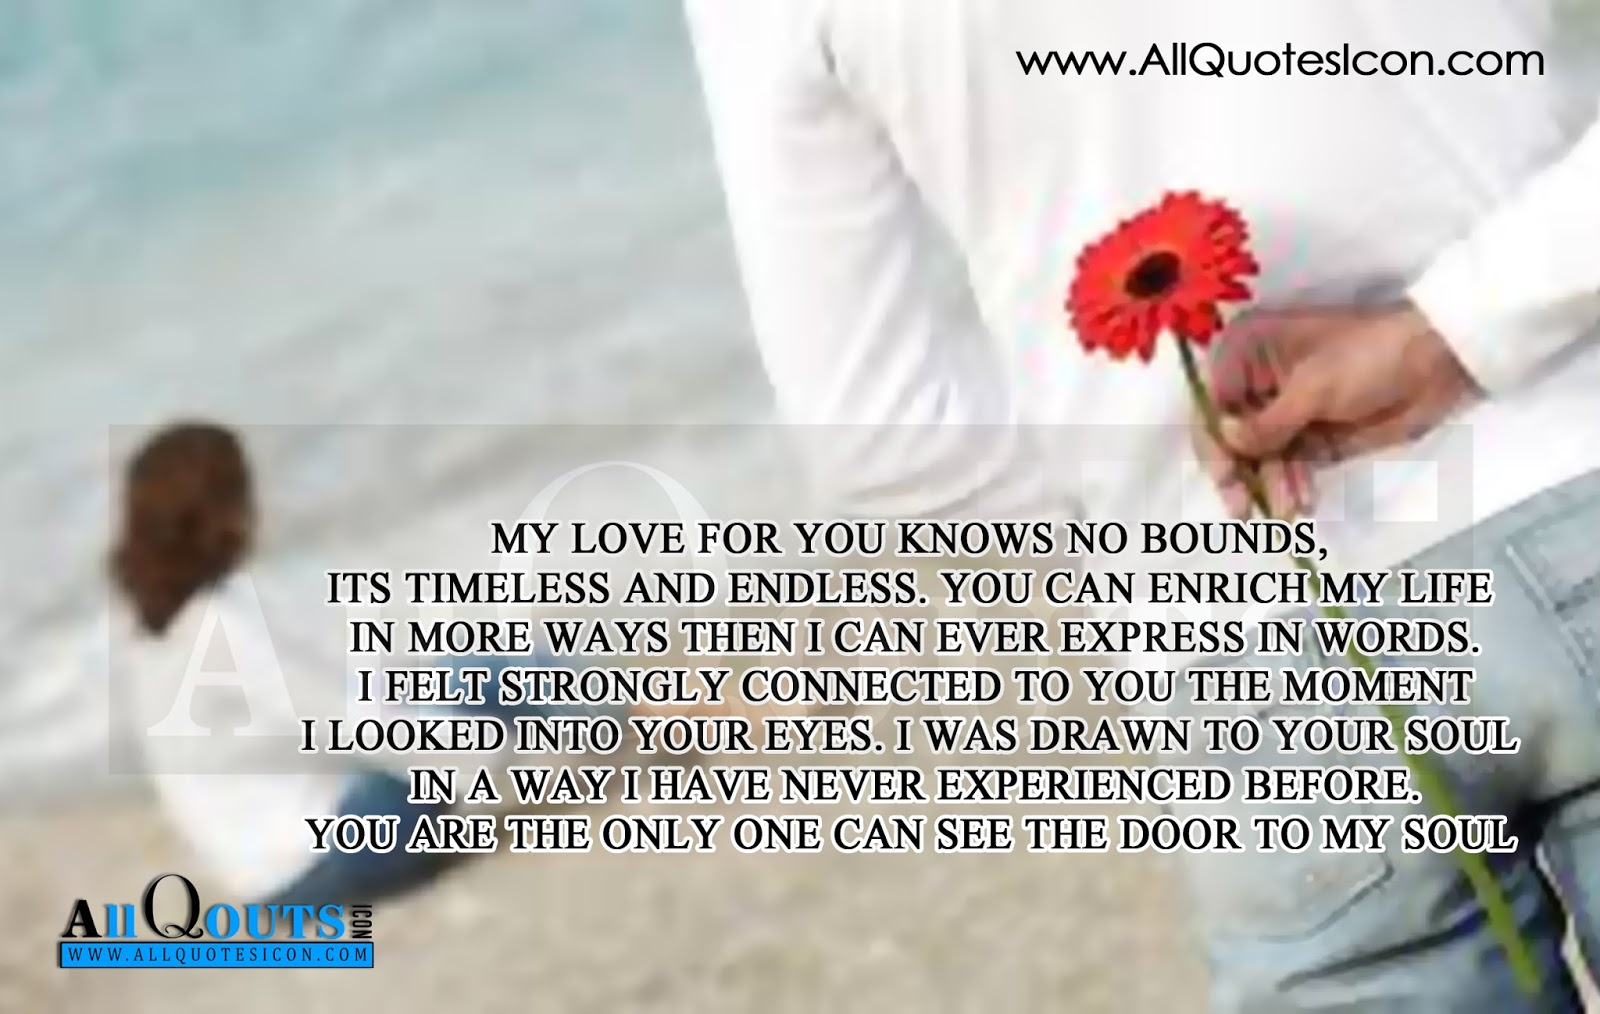 I Love You Quotes For Her Love Quotes From English Love Quotes Spanish English Quotesgram.